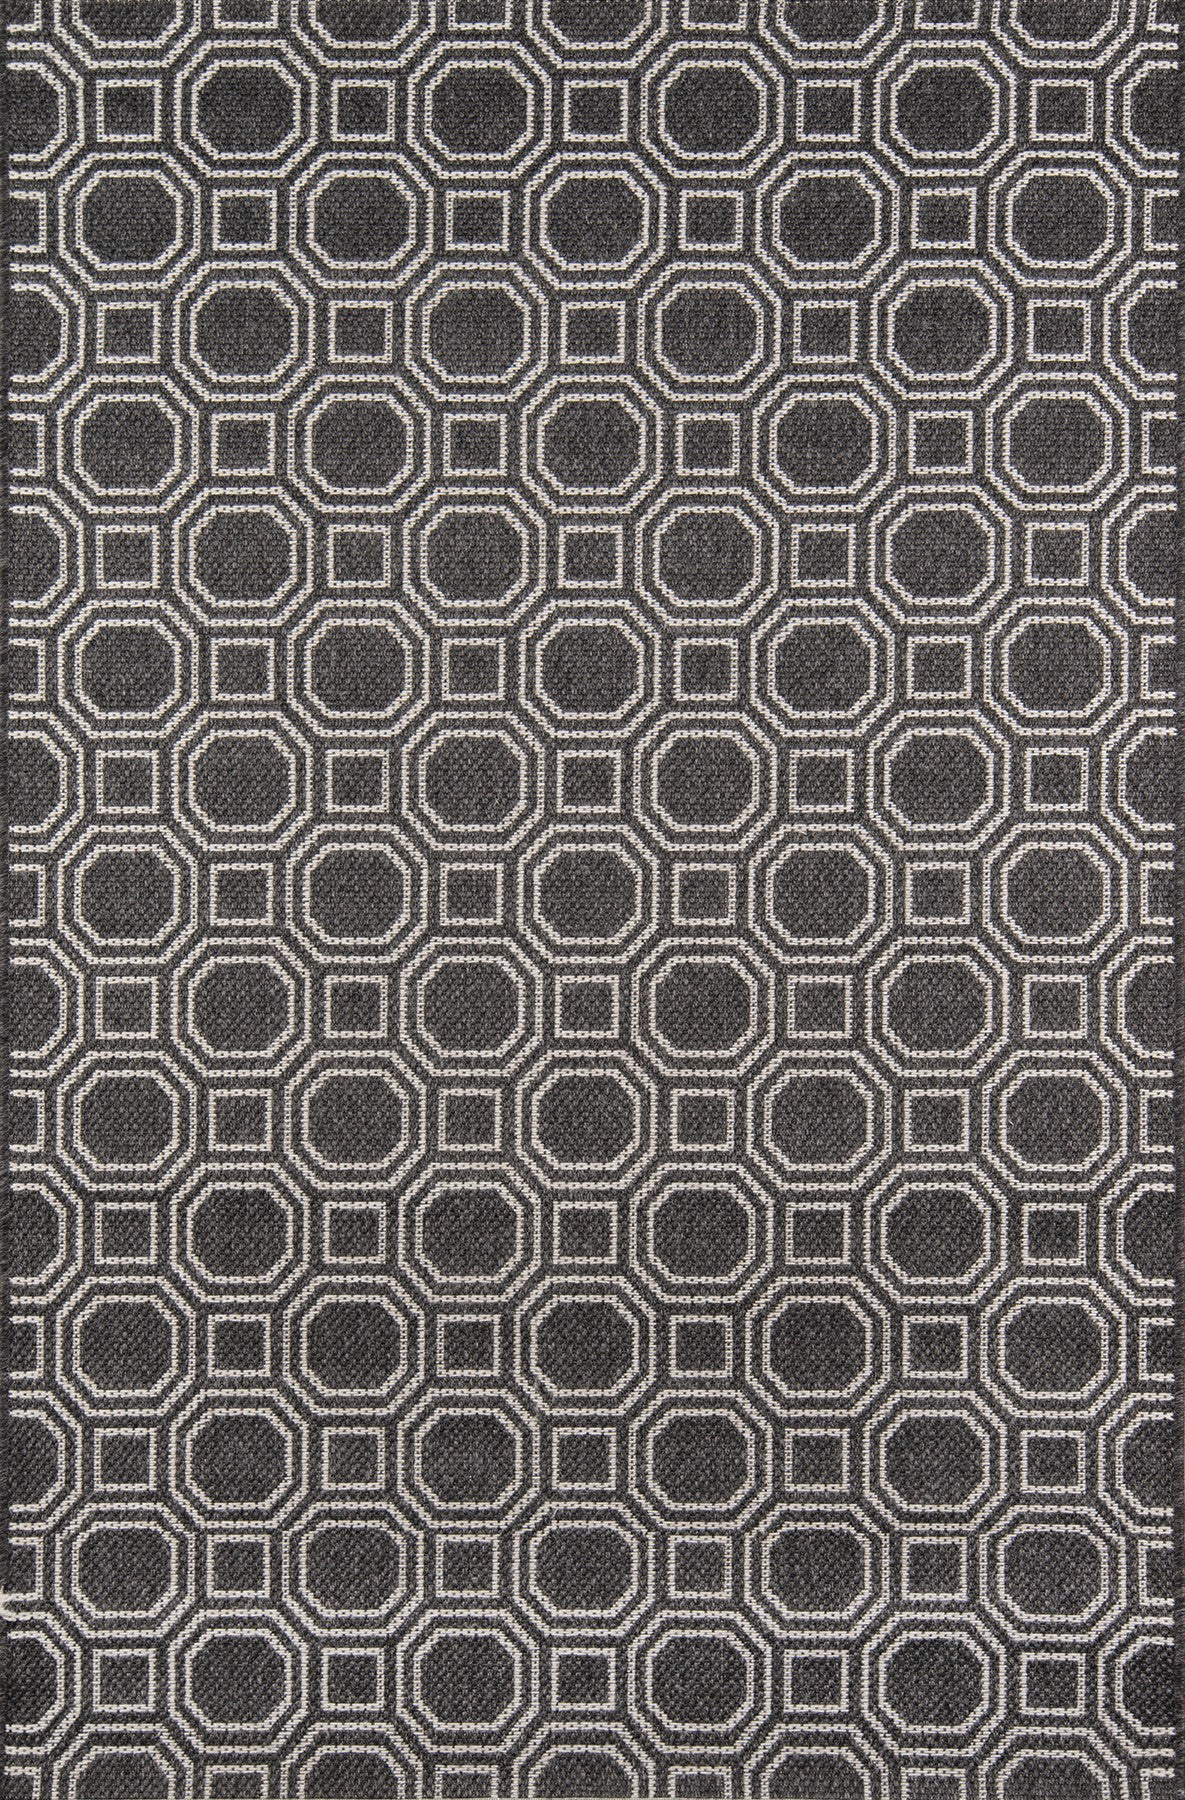 Momeni Downeast DOW-1 Charcoal Area Rug by Erin Gates main image